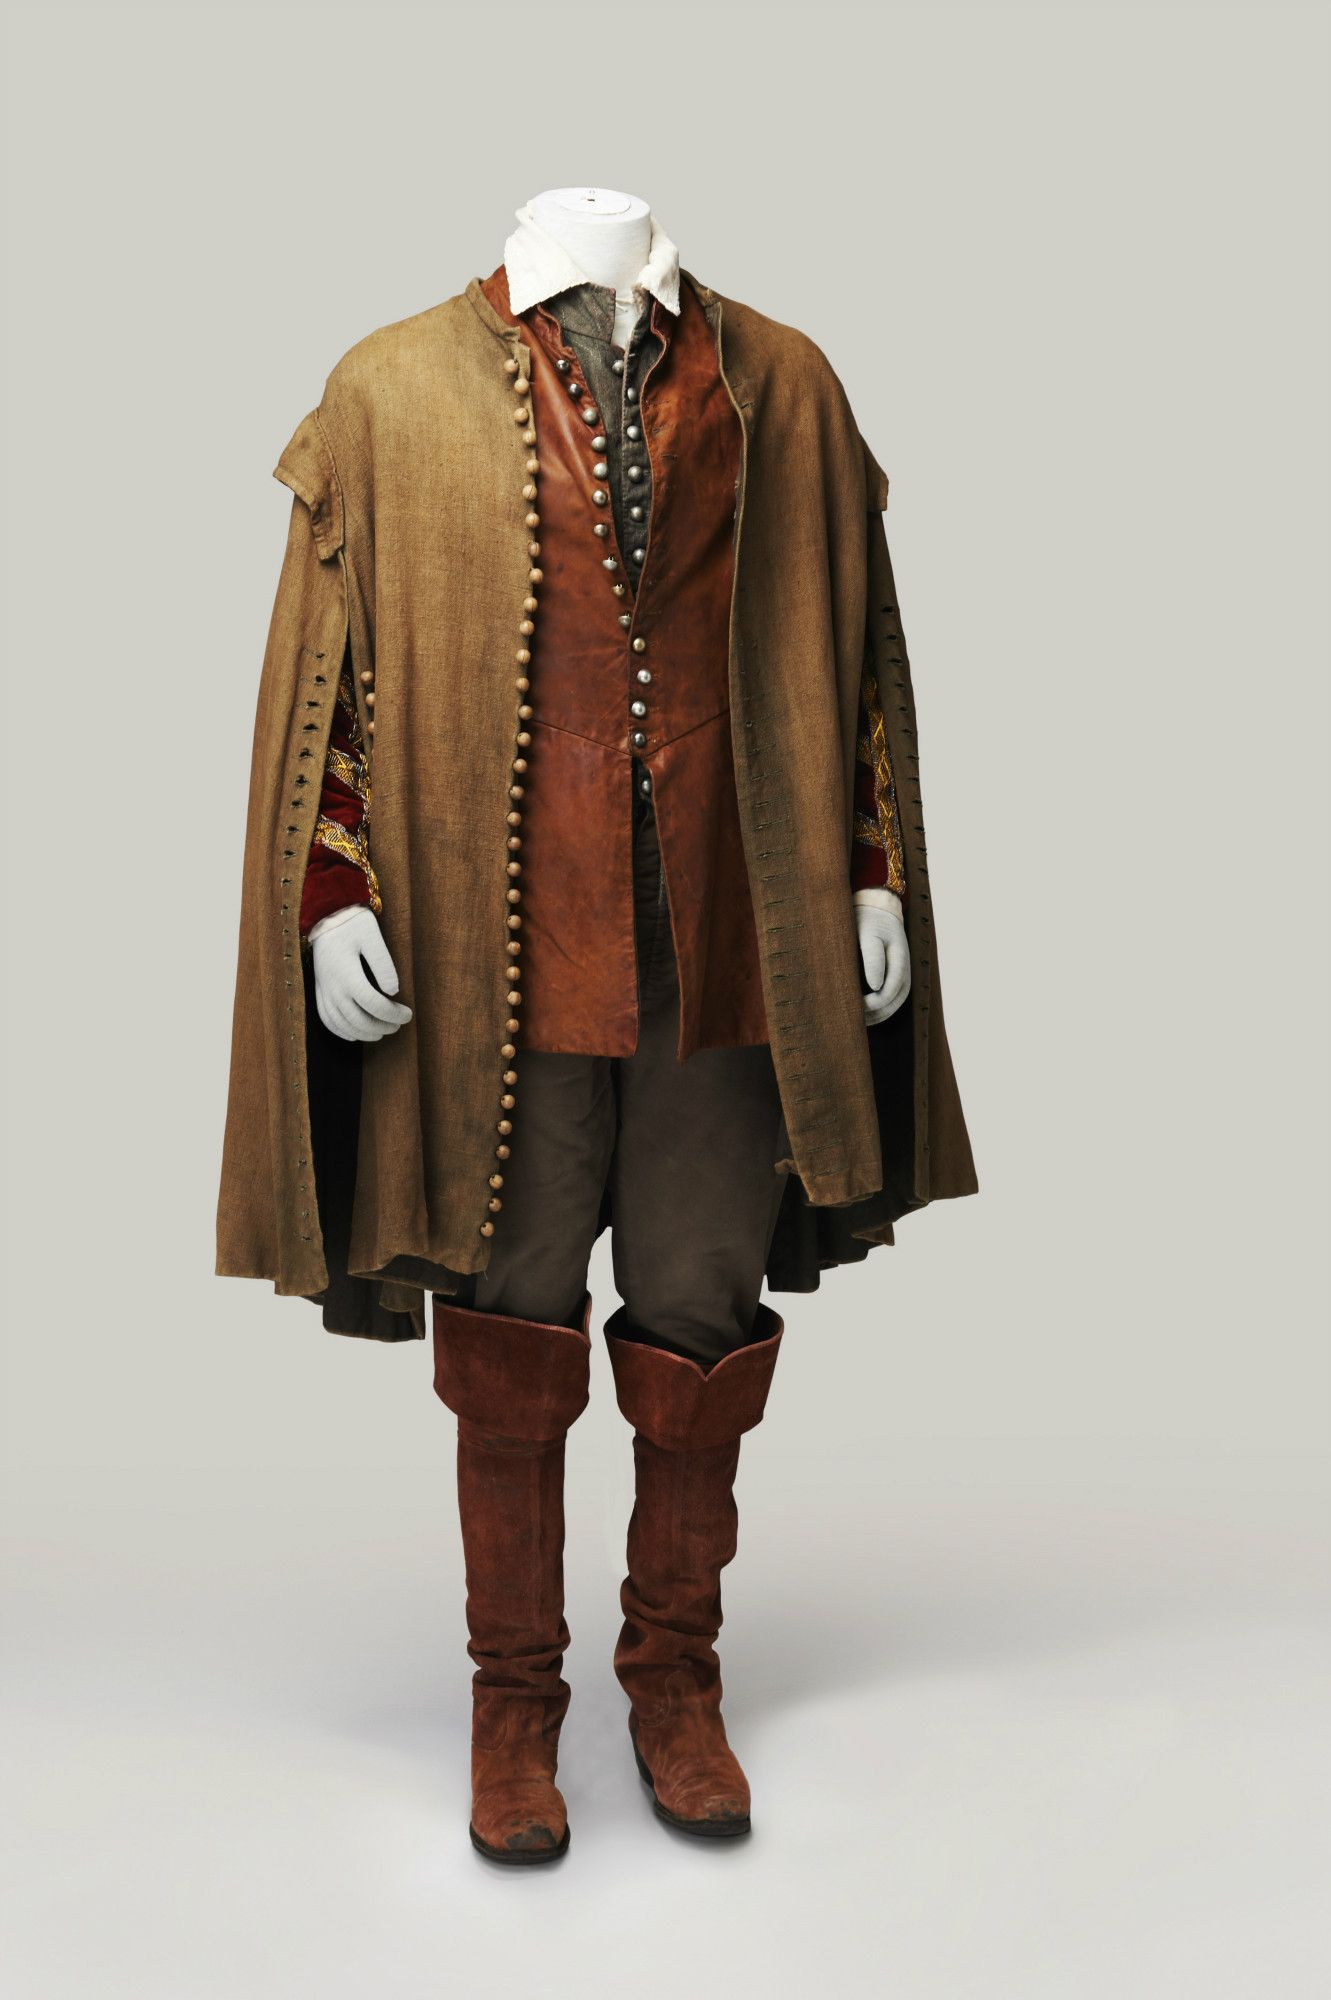 Costumes & Accessories Men's Costumes Precise Adult Men Medieval Tunic Shirt Larp Viking Pirate Costume Renaissance Clothing Celtic Horseback Knight Cos Garb Dress For Men An Indispensable Sovereign Remedy For Home